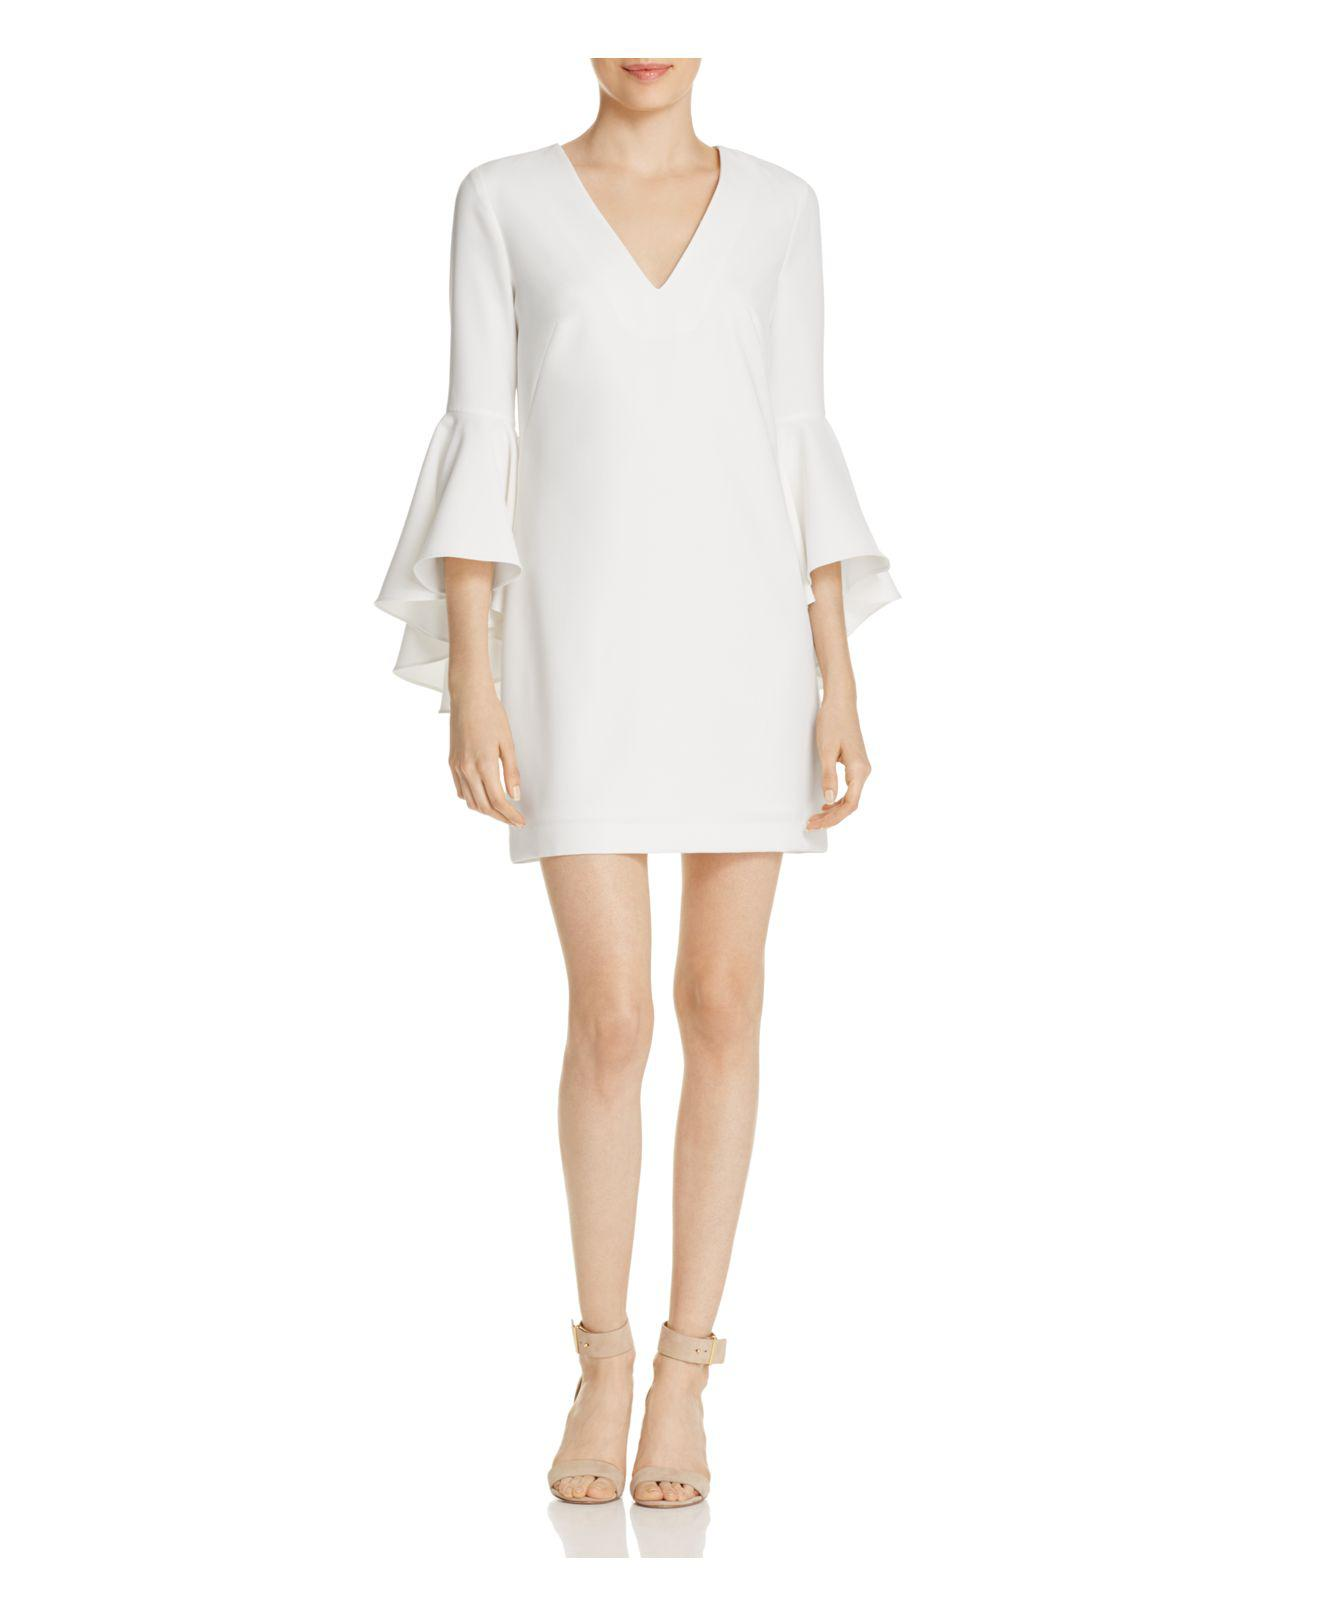 58be49be12 Lyst - MILLY Bell-sleeve Nicole Dress in White